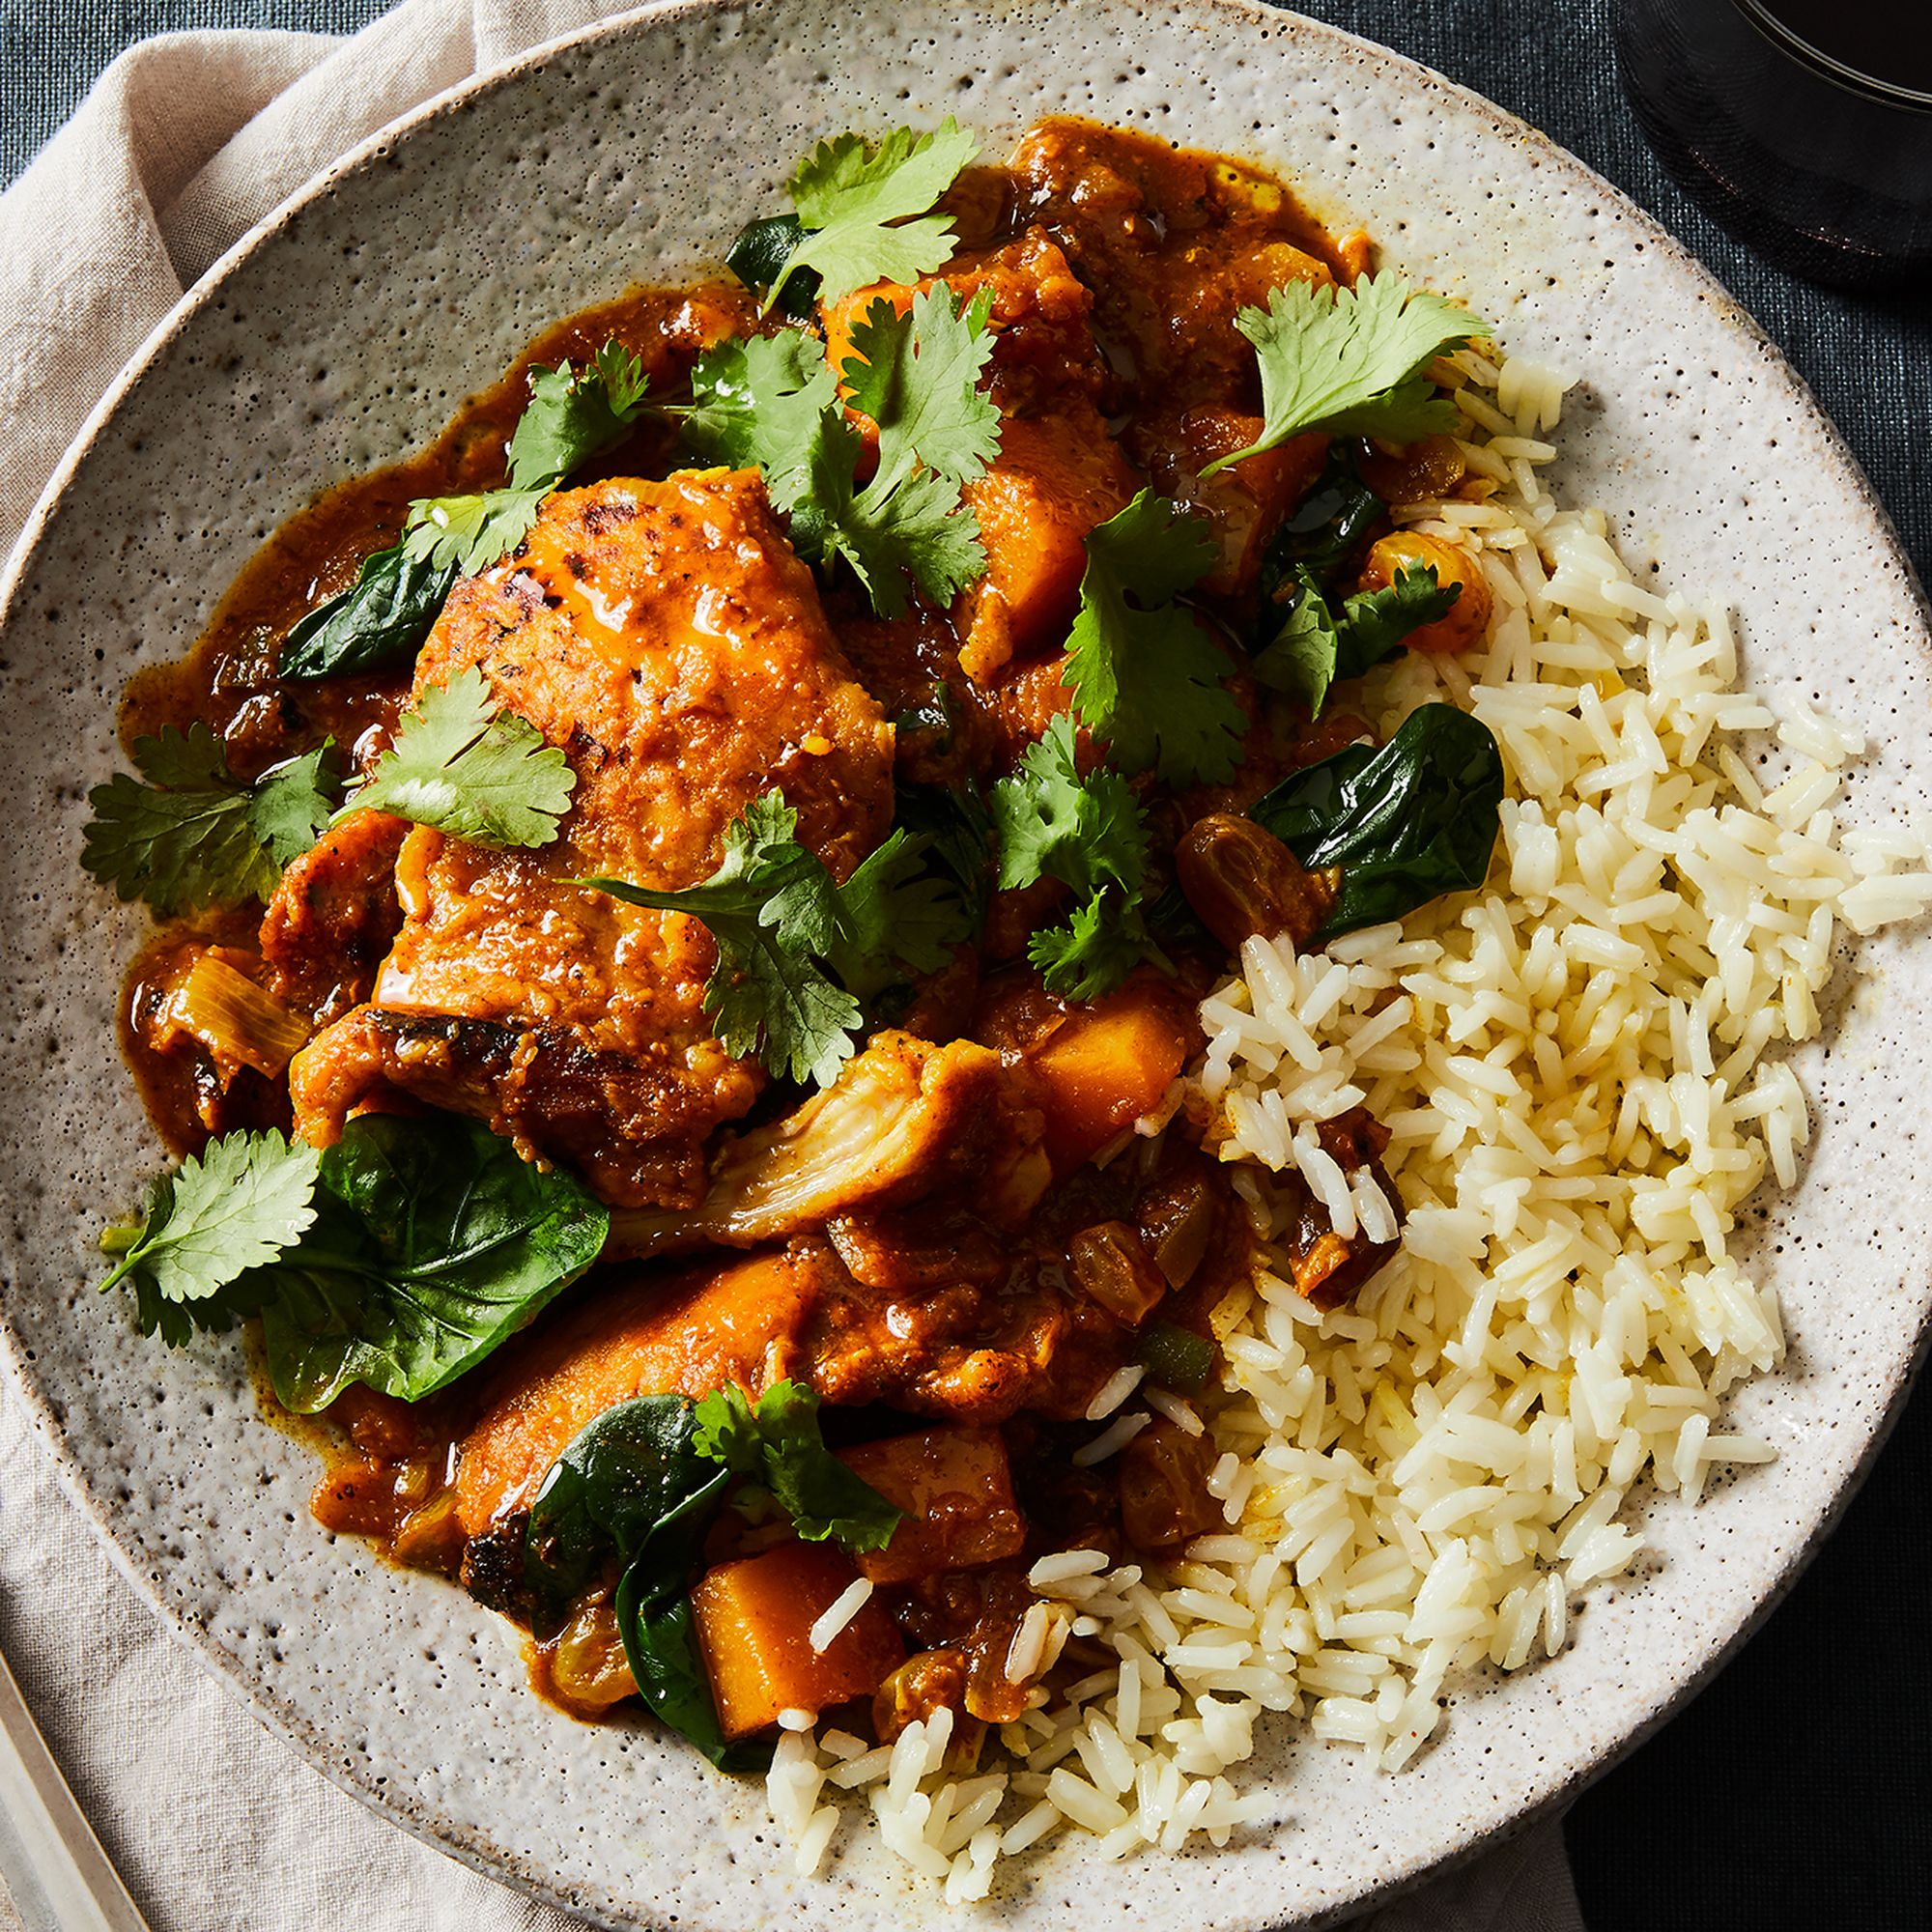 50 Slow-Cooker Recipes to Set & Forget